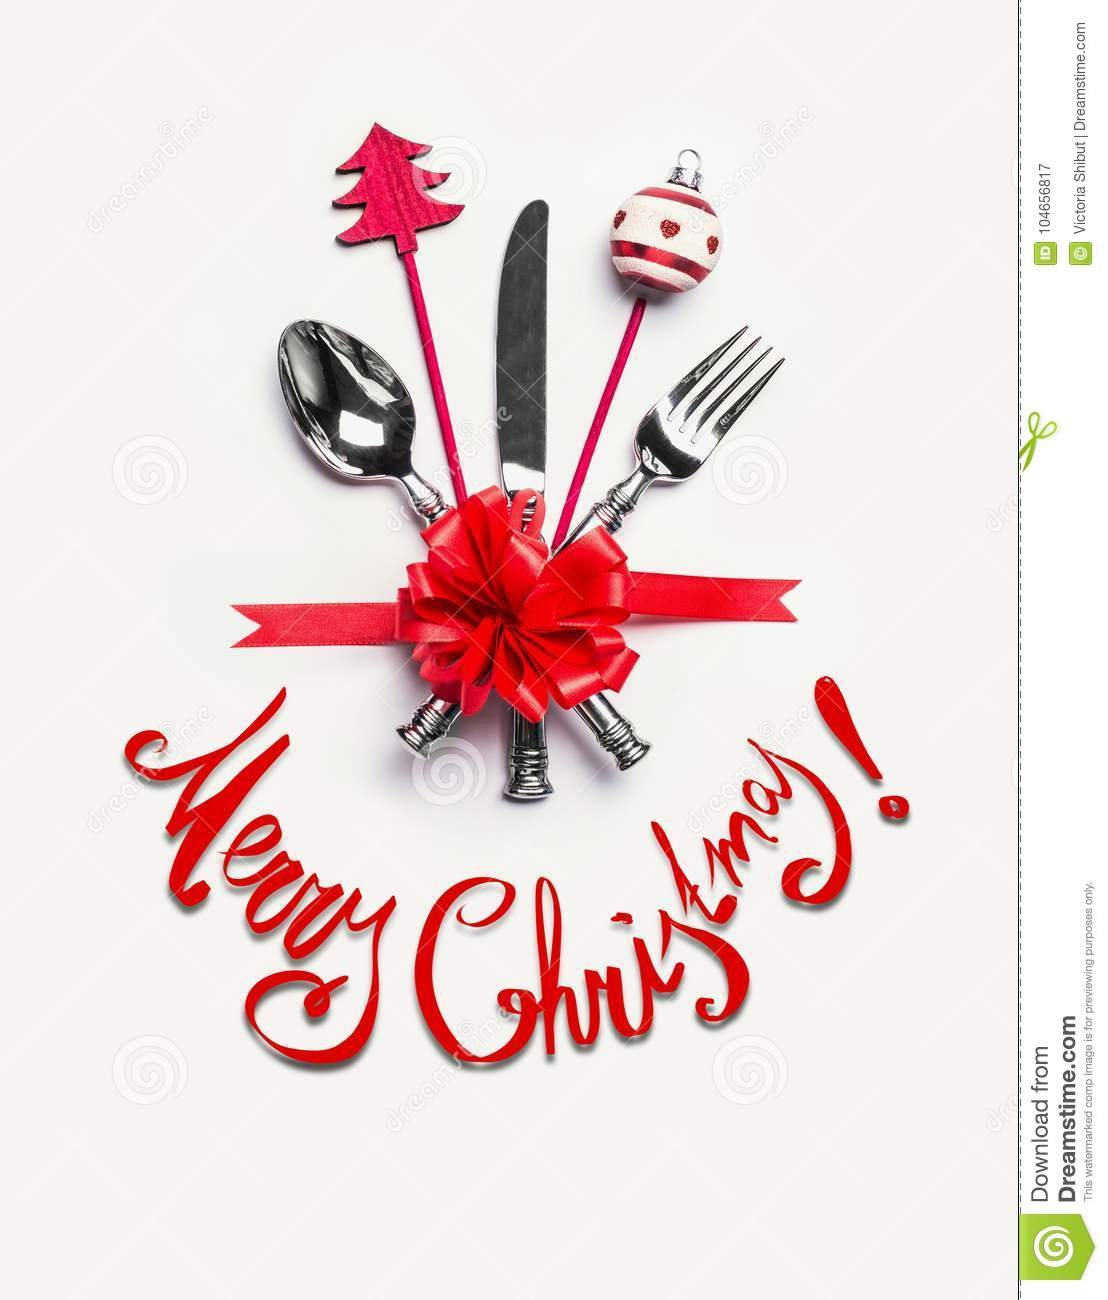 Merry Christmas Card With Table Place Setting With Cutlery, Red ...